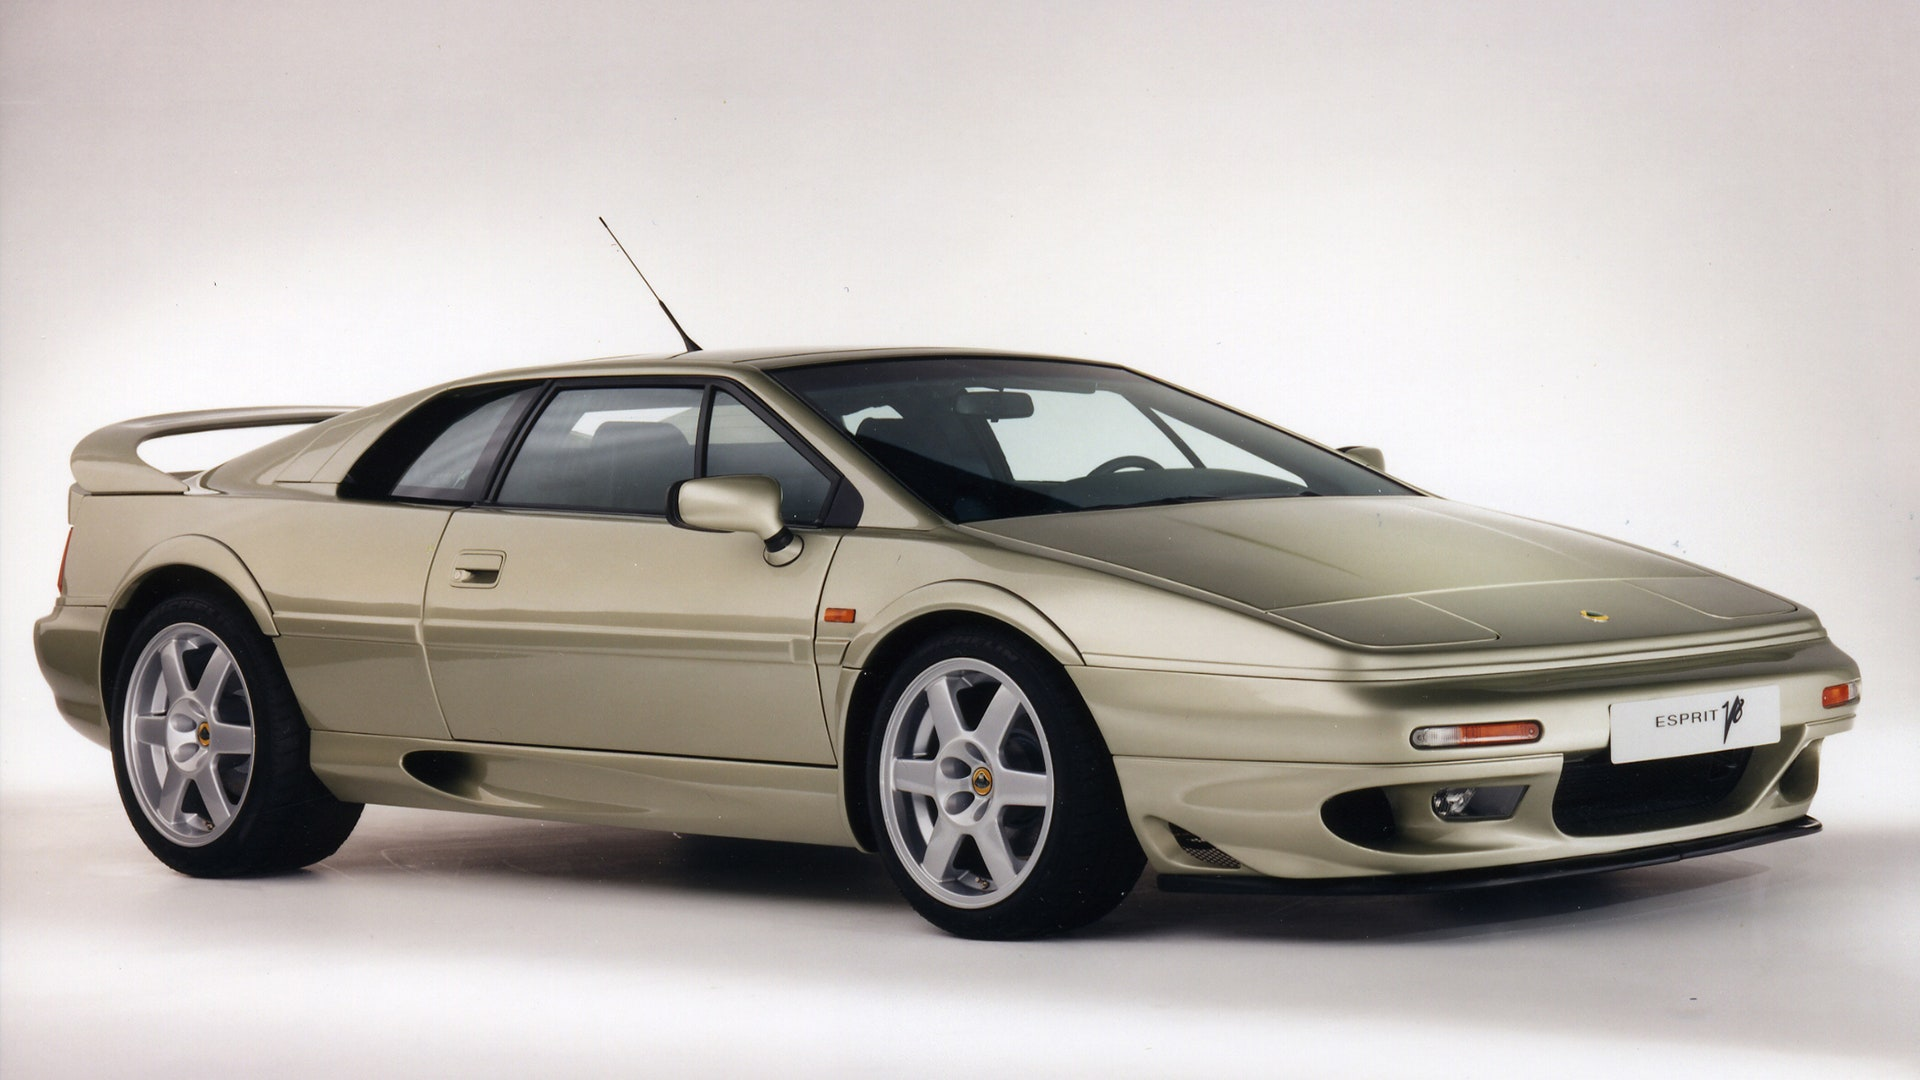 EV Restomods: 5 cars we wish to be given the 21st century restoration and update